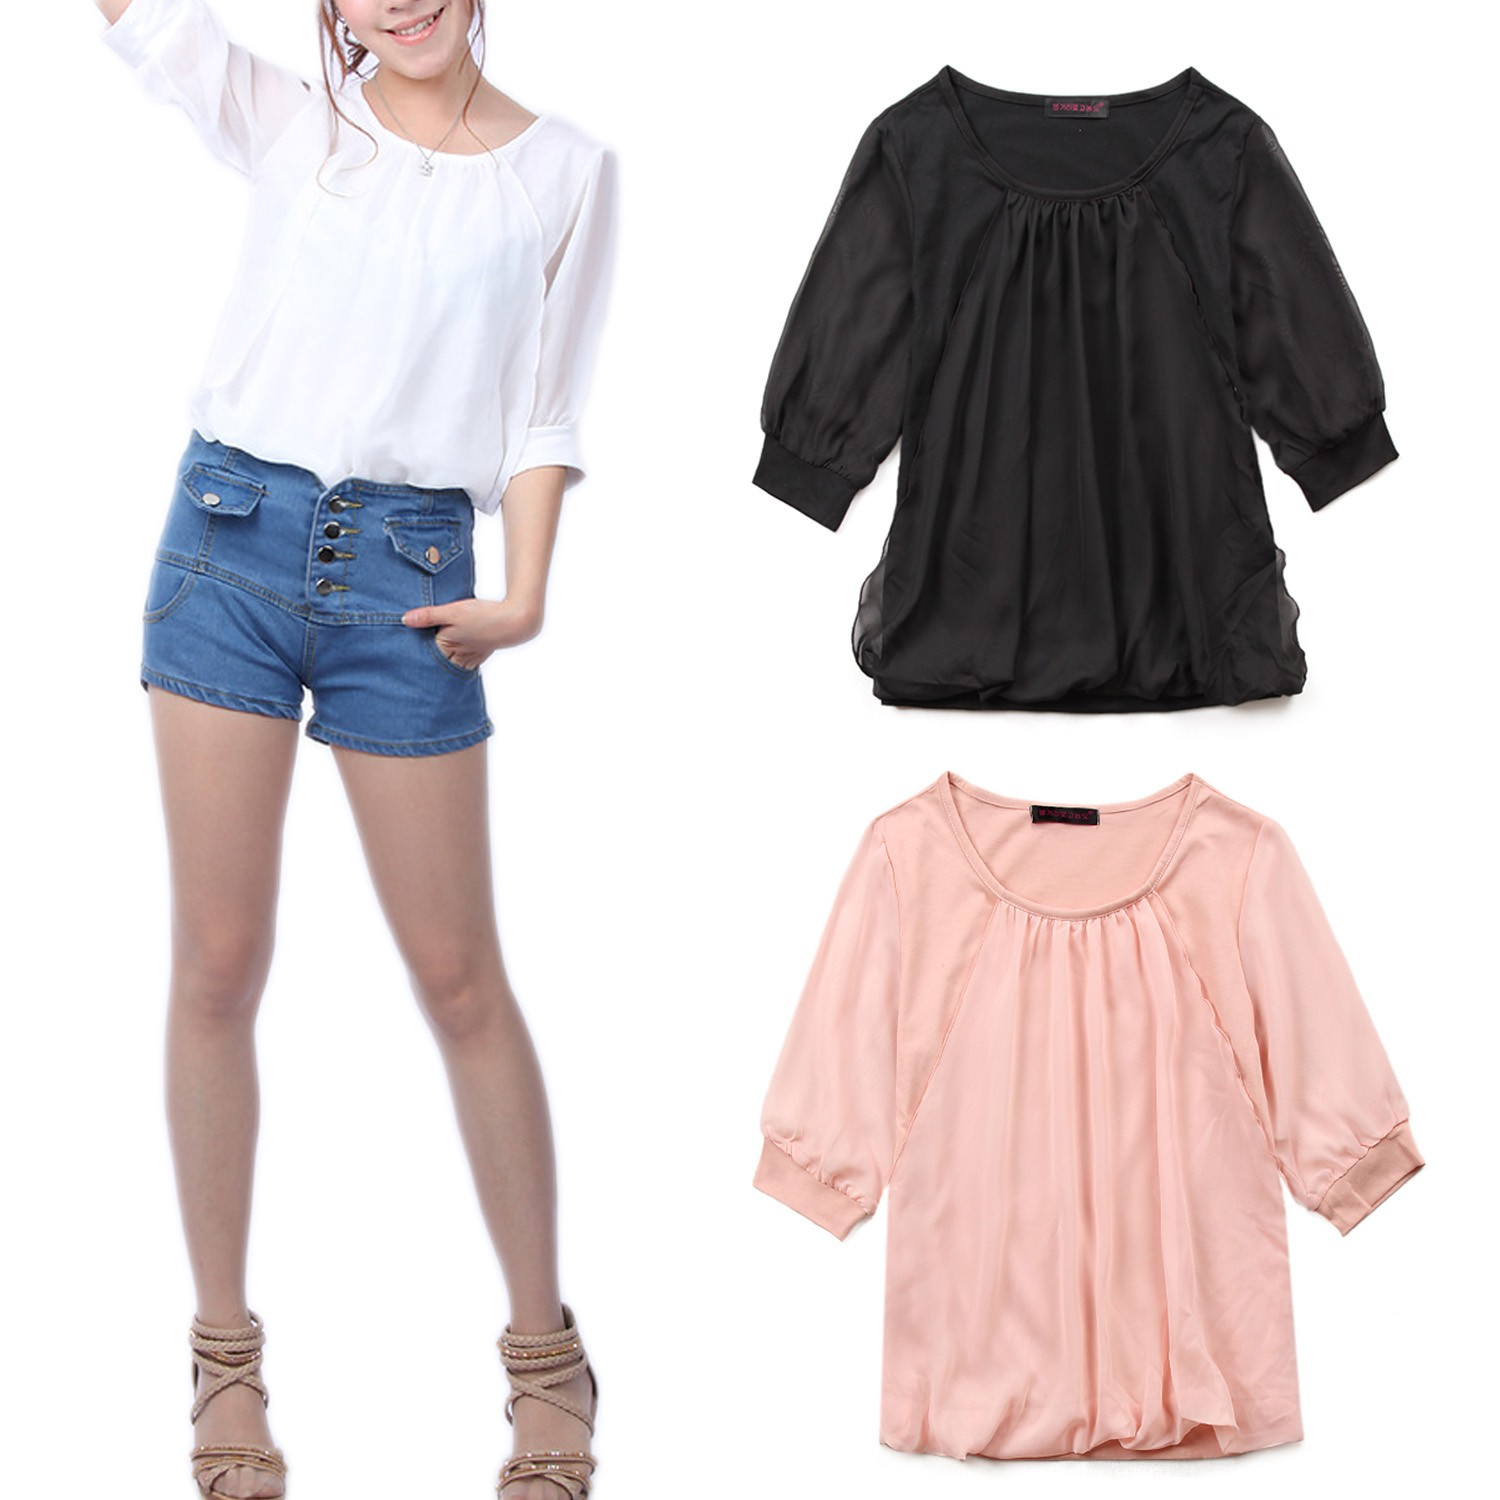 Chiffon Top Blouse - t113#